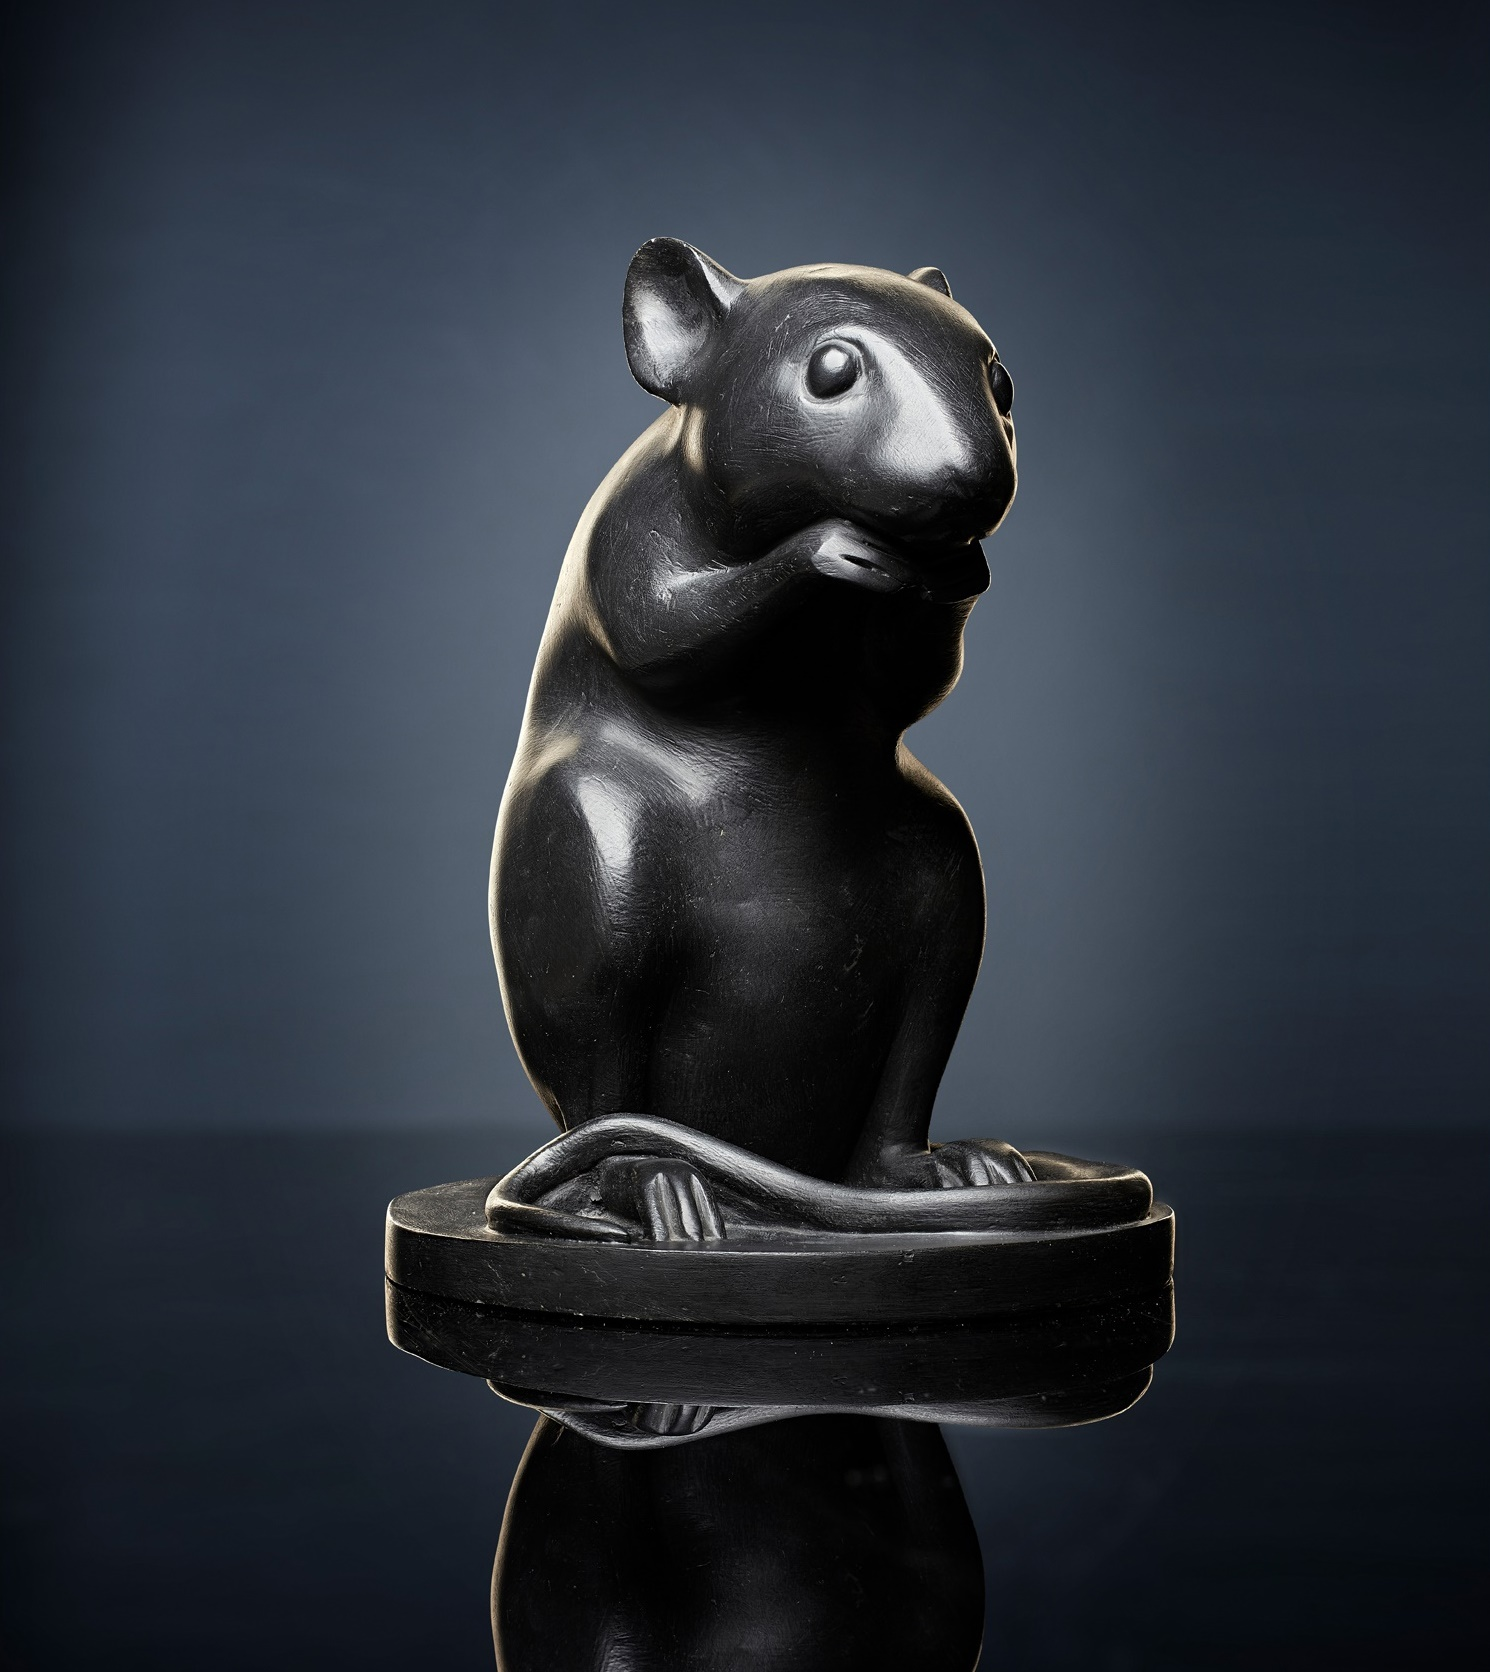 KENNY HUNTER, MONUMENT TO A MOUSE, 2012